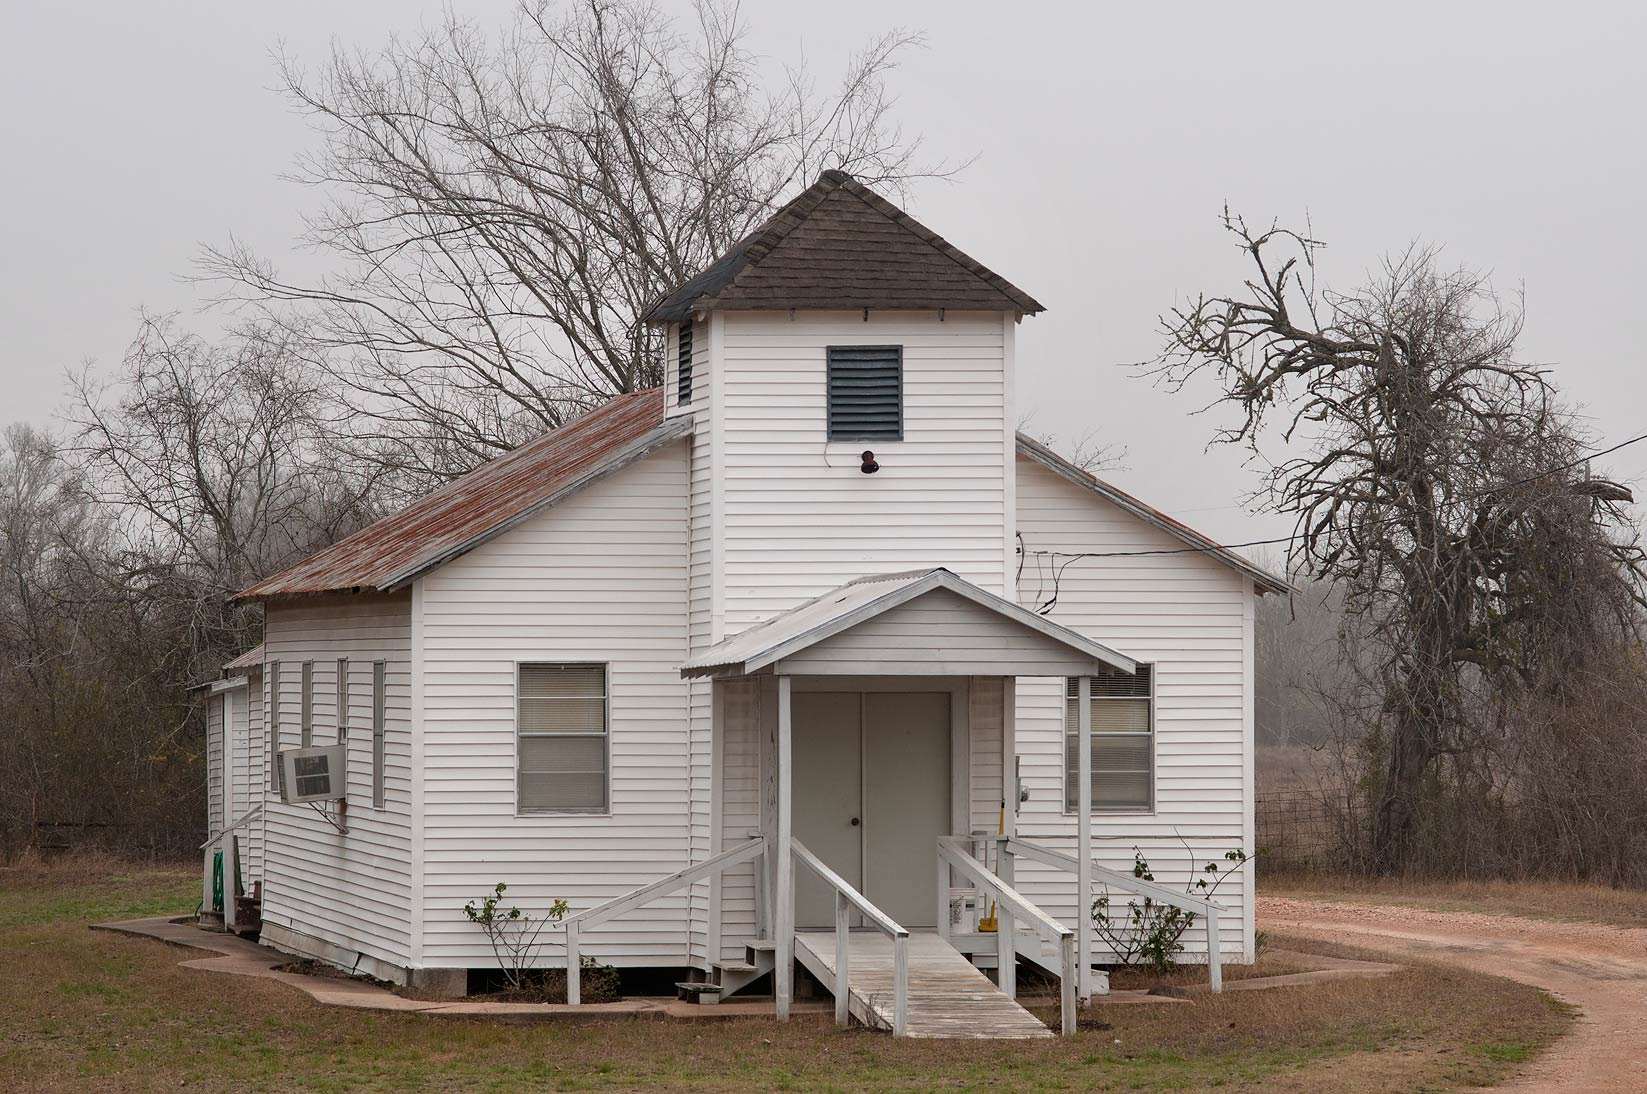 Union Hill Missionary Baptist Church near W. M. Penn Rd. near Brenham. Texas